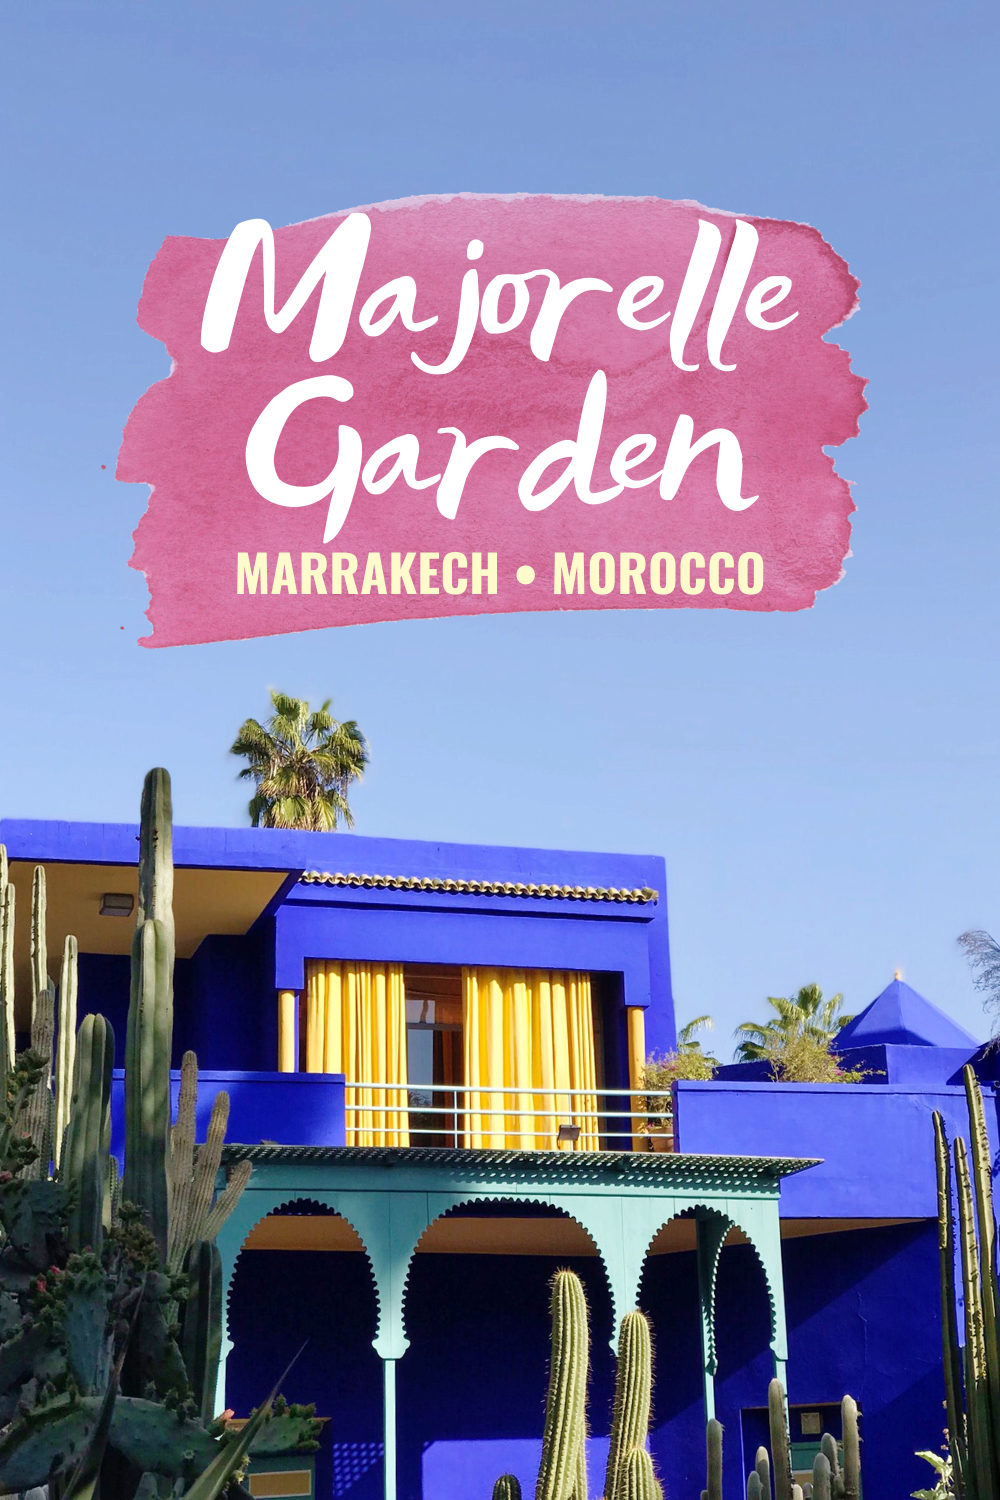 Morocco Travel Photo Diary: Majorelle Garden - Looking for a visual escape to Morocco? I'm sharing all the details on the Majorelle Garden in Marrakech! | Majorelle Garden - Garden In Morocco - YSL Garden Marrakech - Majorelle Gardens Yves Saint Laurent - Morocco Travel